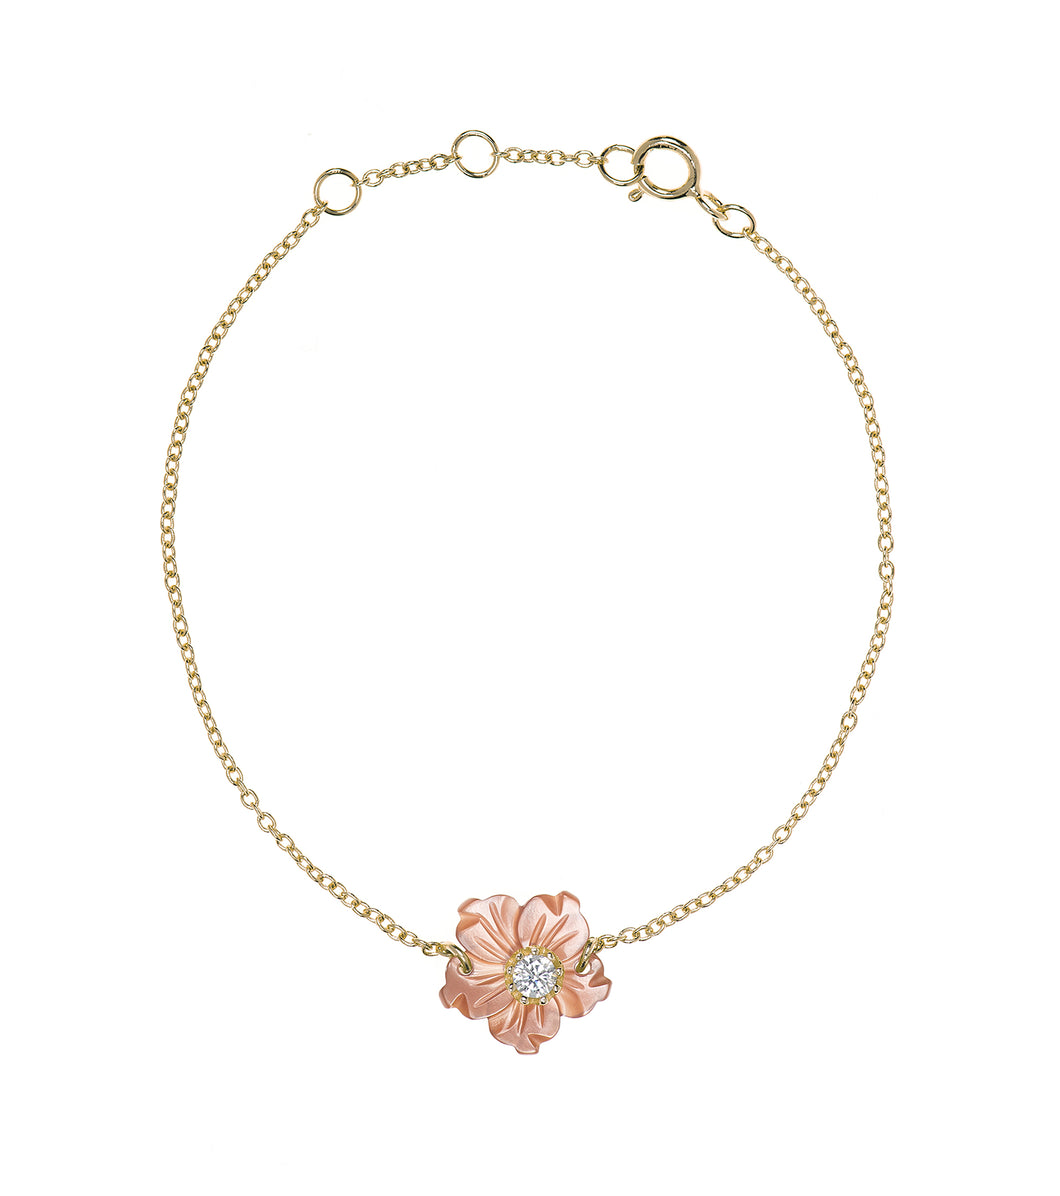 Pink Mother of Pearl Flower Bracelet